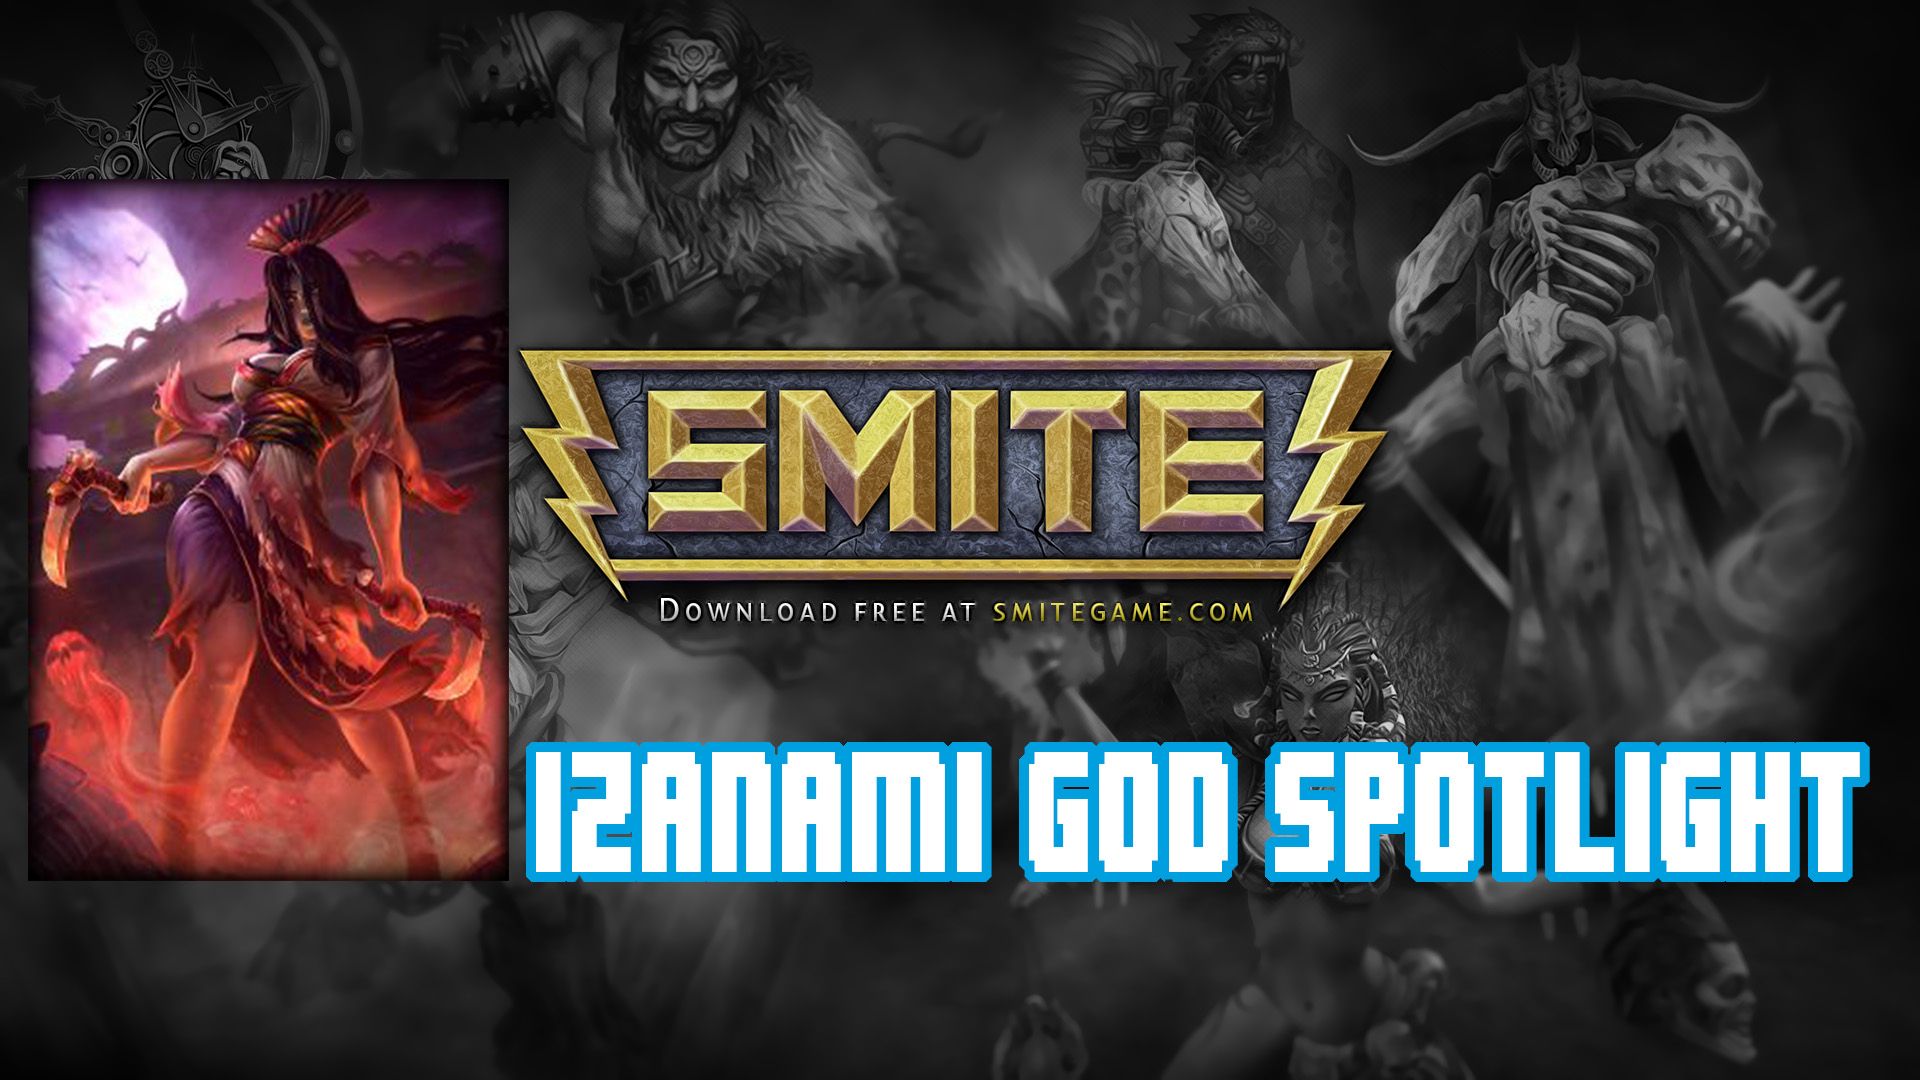 Izanami God Spotlight